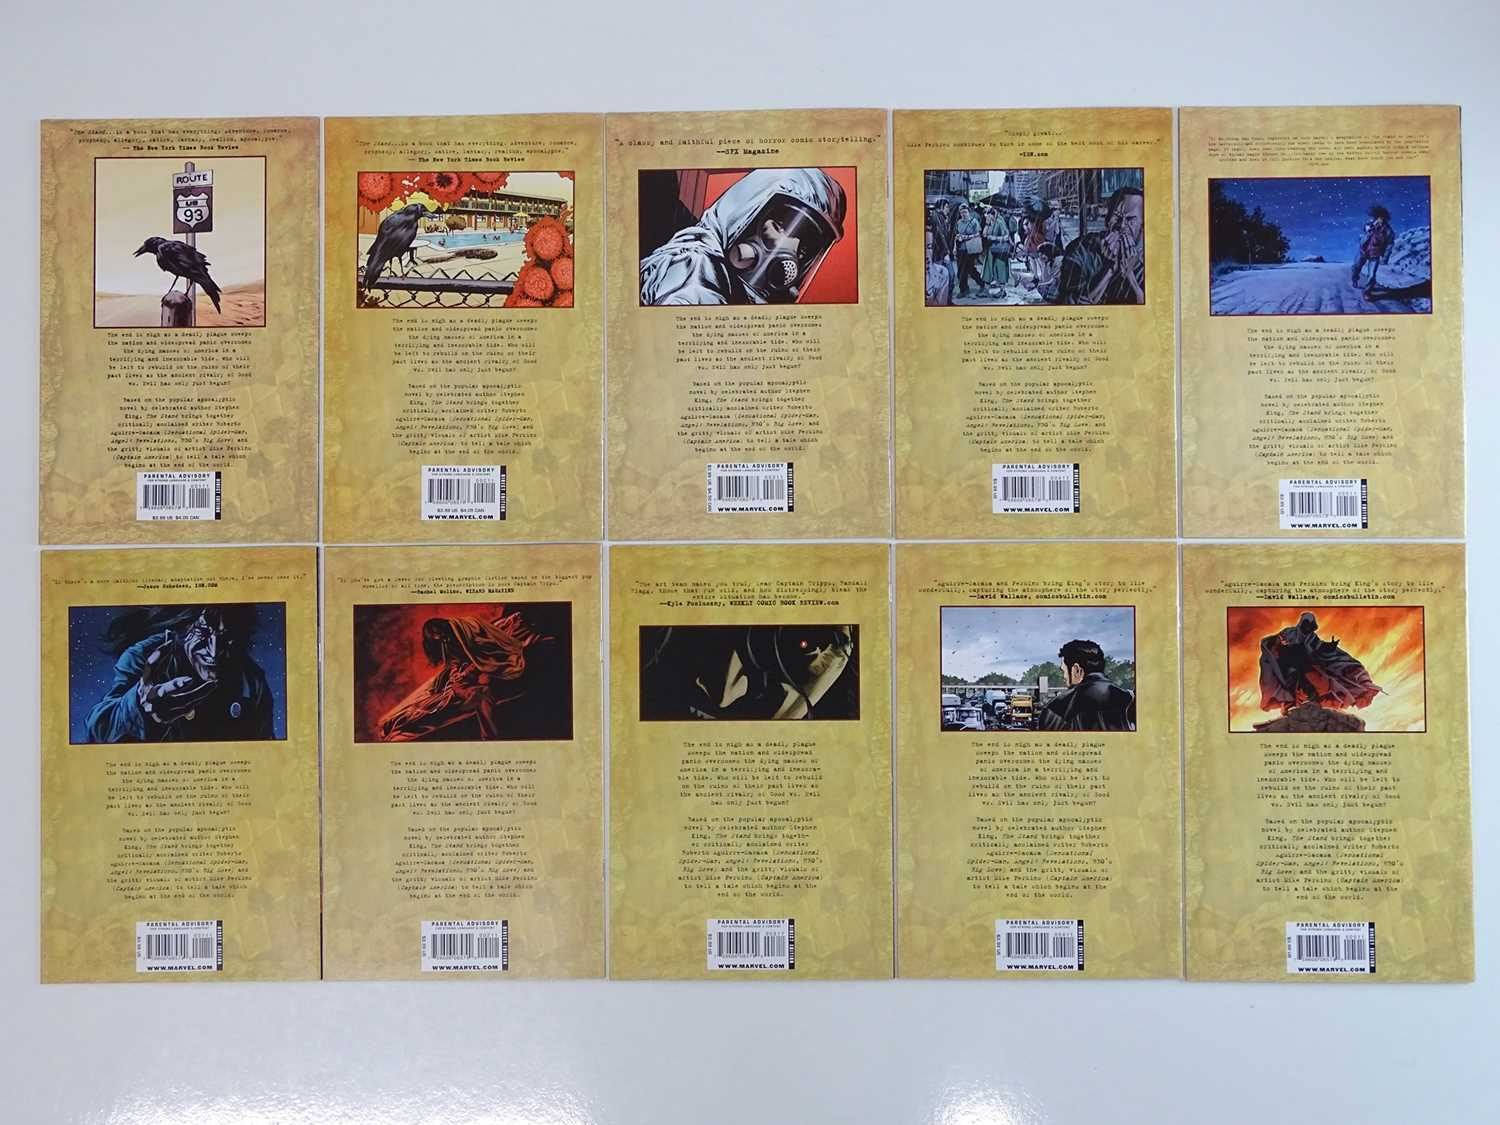 STEPHEN KING: THE STAND - CAPTAIN TRIPS & AMERICAN NIGHTMARES #1, 2, 3, 4, 5 - (10 in Lot) - (2008/ - Image 2 of 2